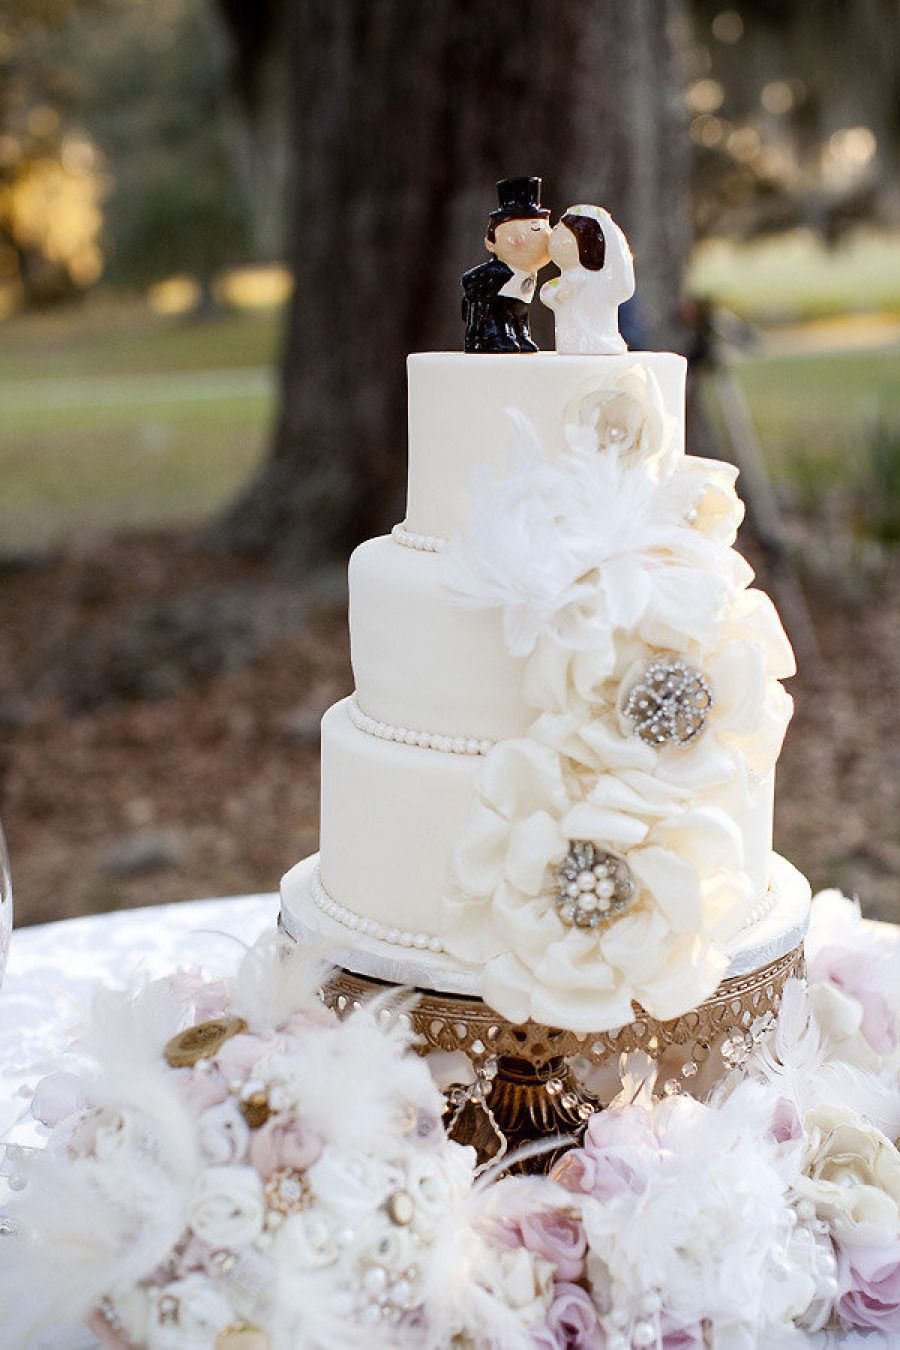 28 Creative and Inspirational Wedding Cakes | Pinterest ...